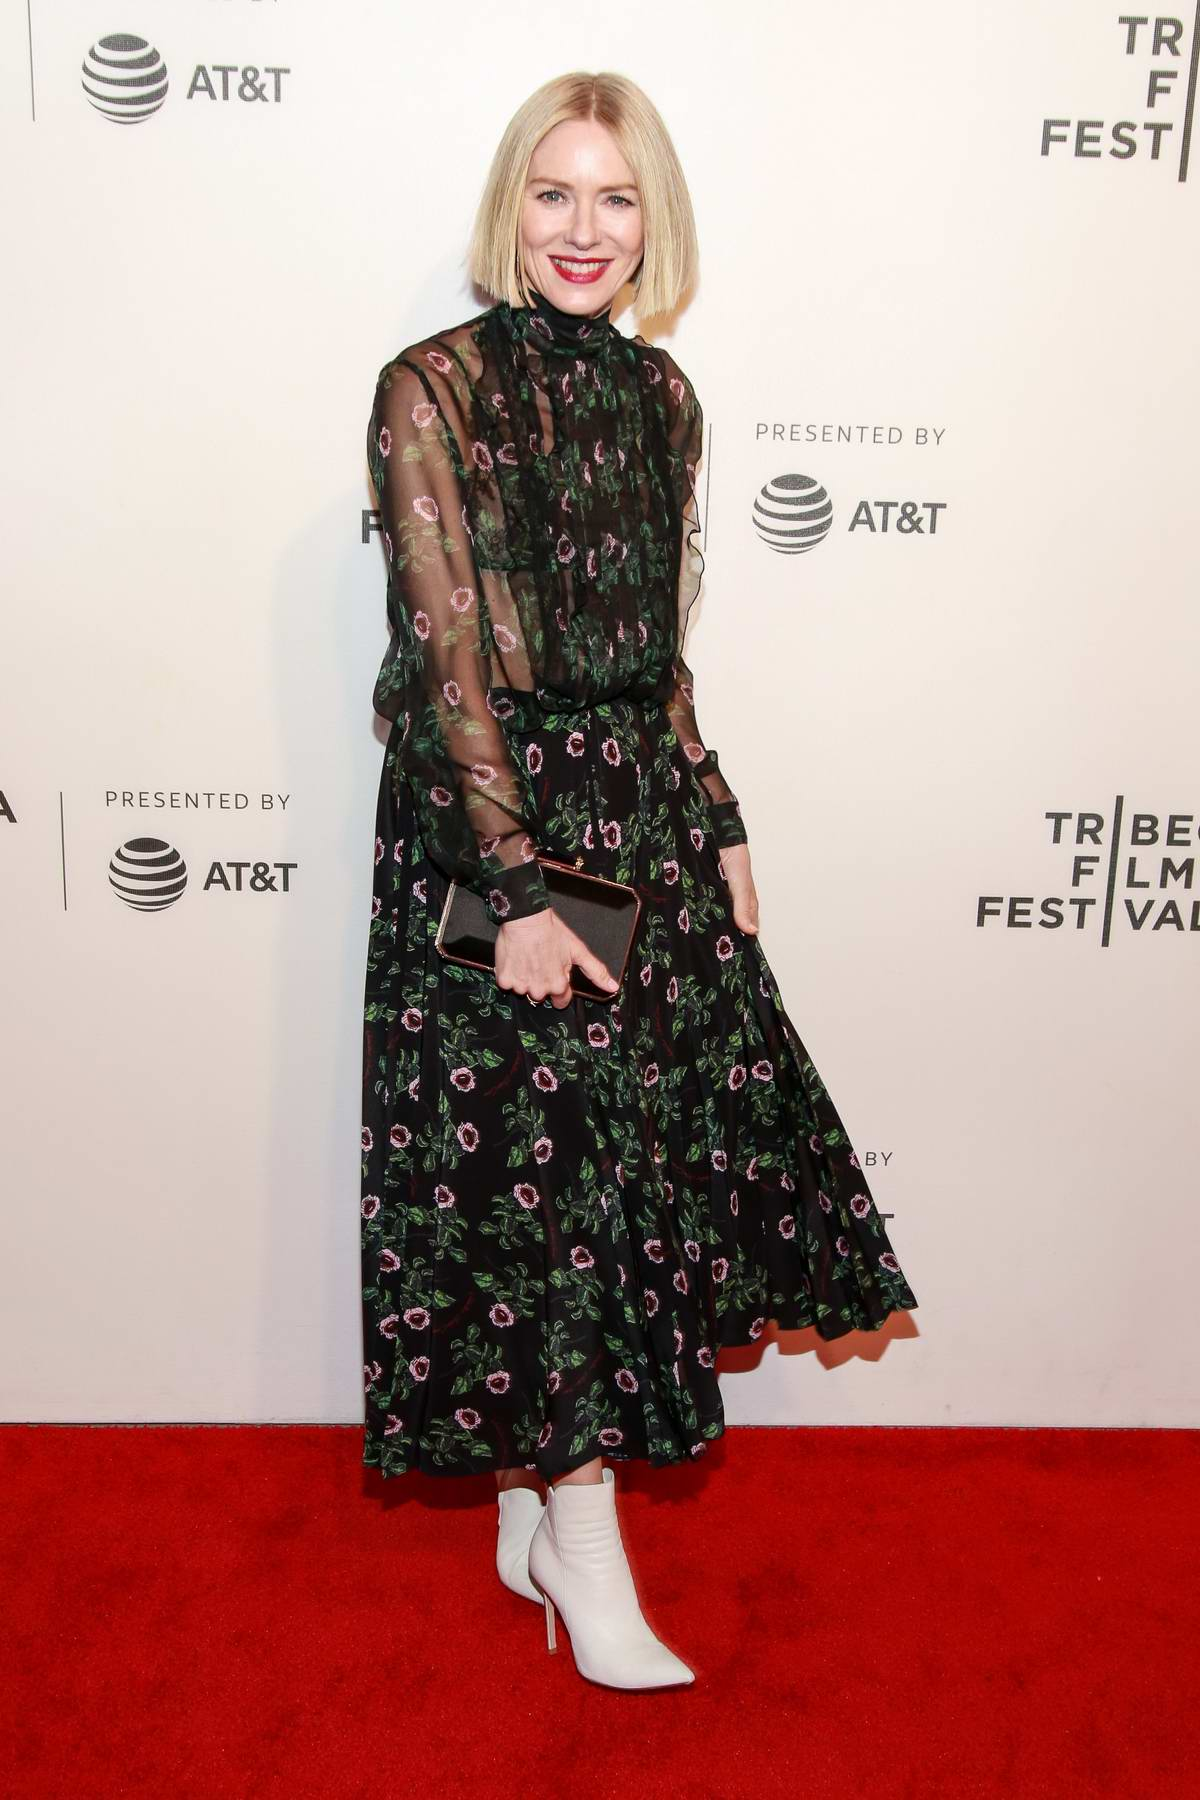 Naomi Watts attends 'Luce' premiere during 2019 Tribeca Film Festival in New York City